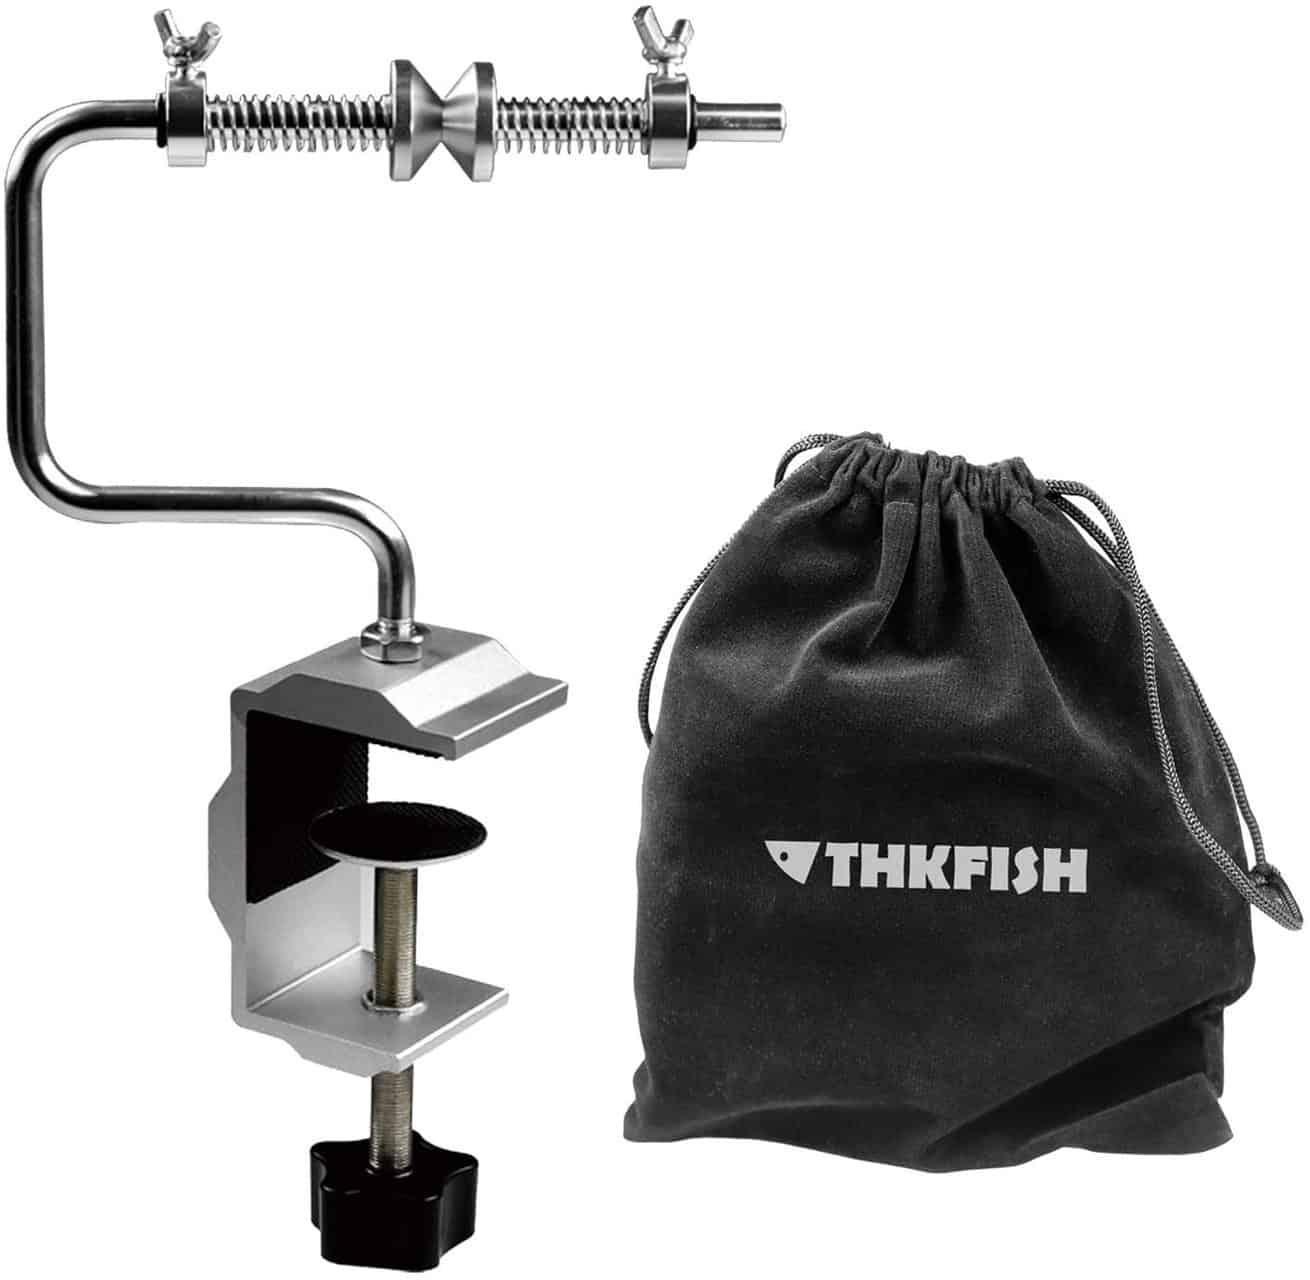 Portable Clamp Fishing Line Spooler by ThkFish